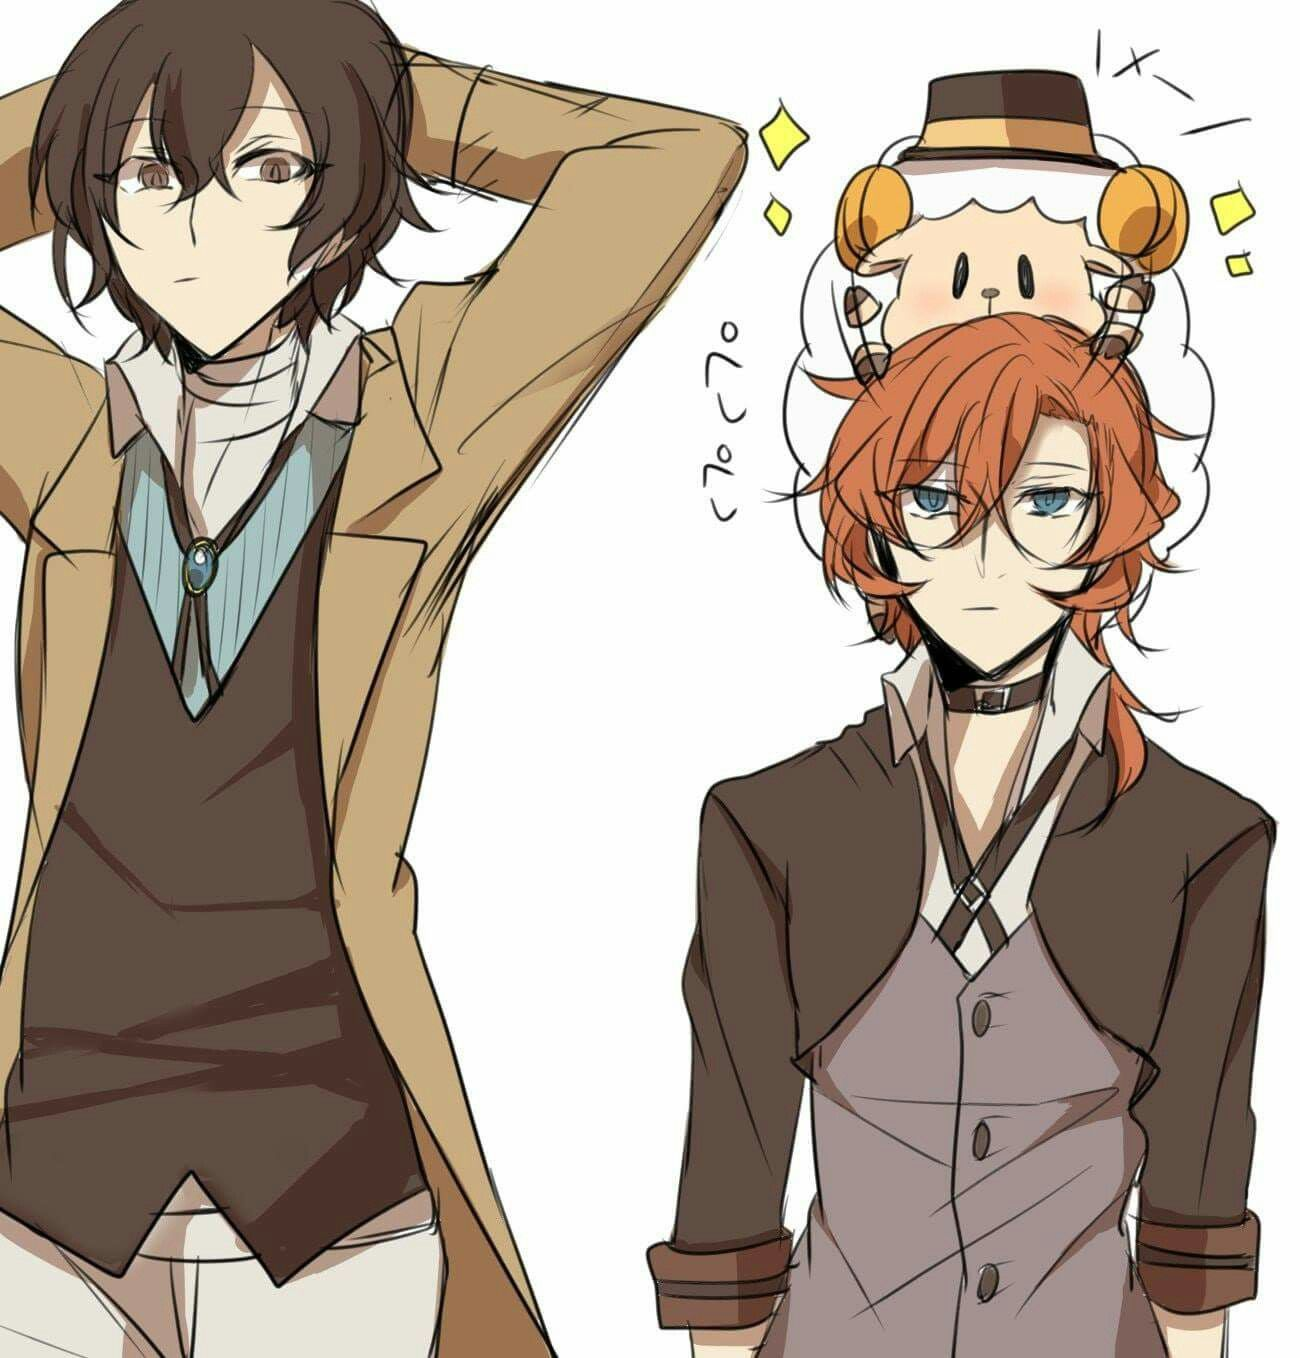 Pin by 冥夜 on 文豪 Bungo stray dogs, Bungou stray dogs